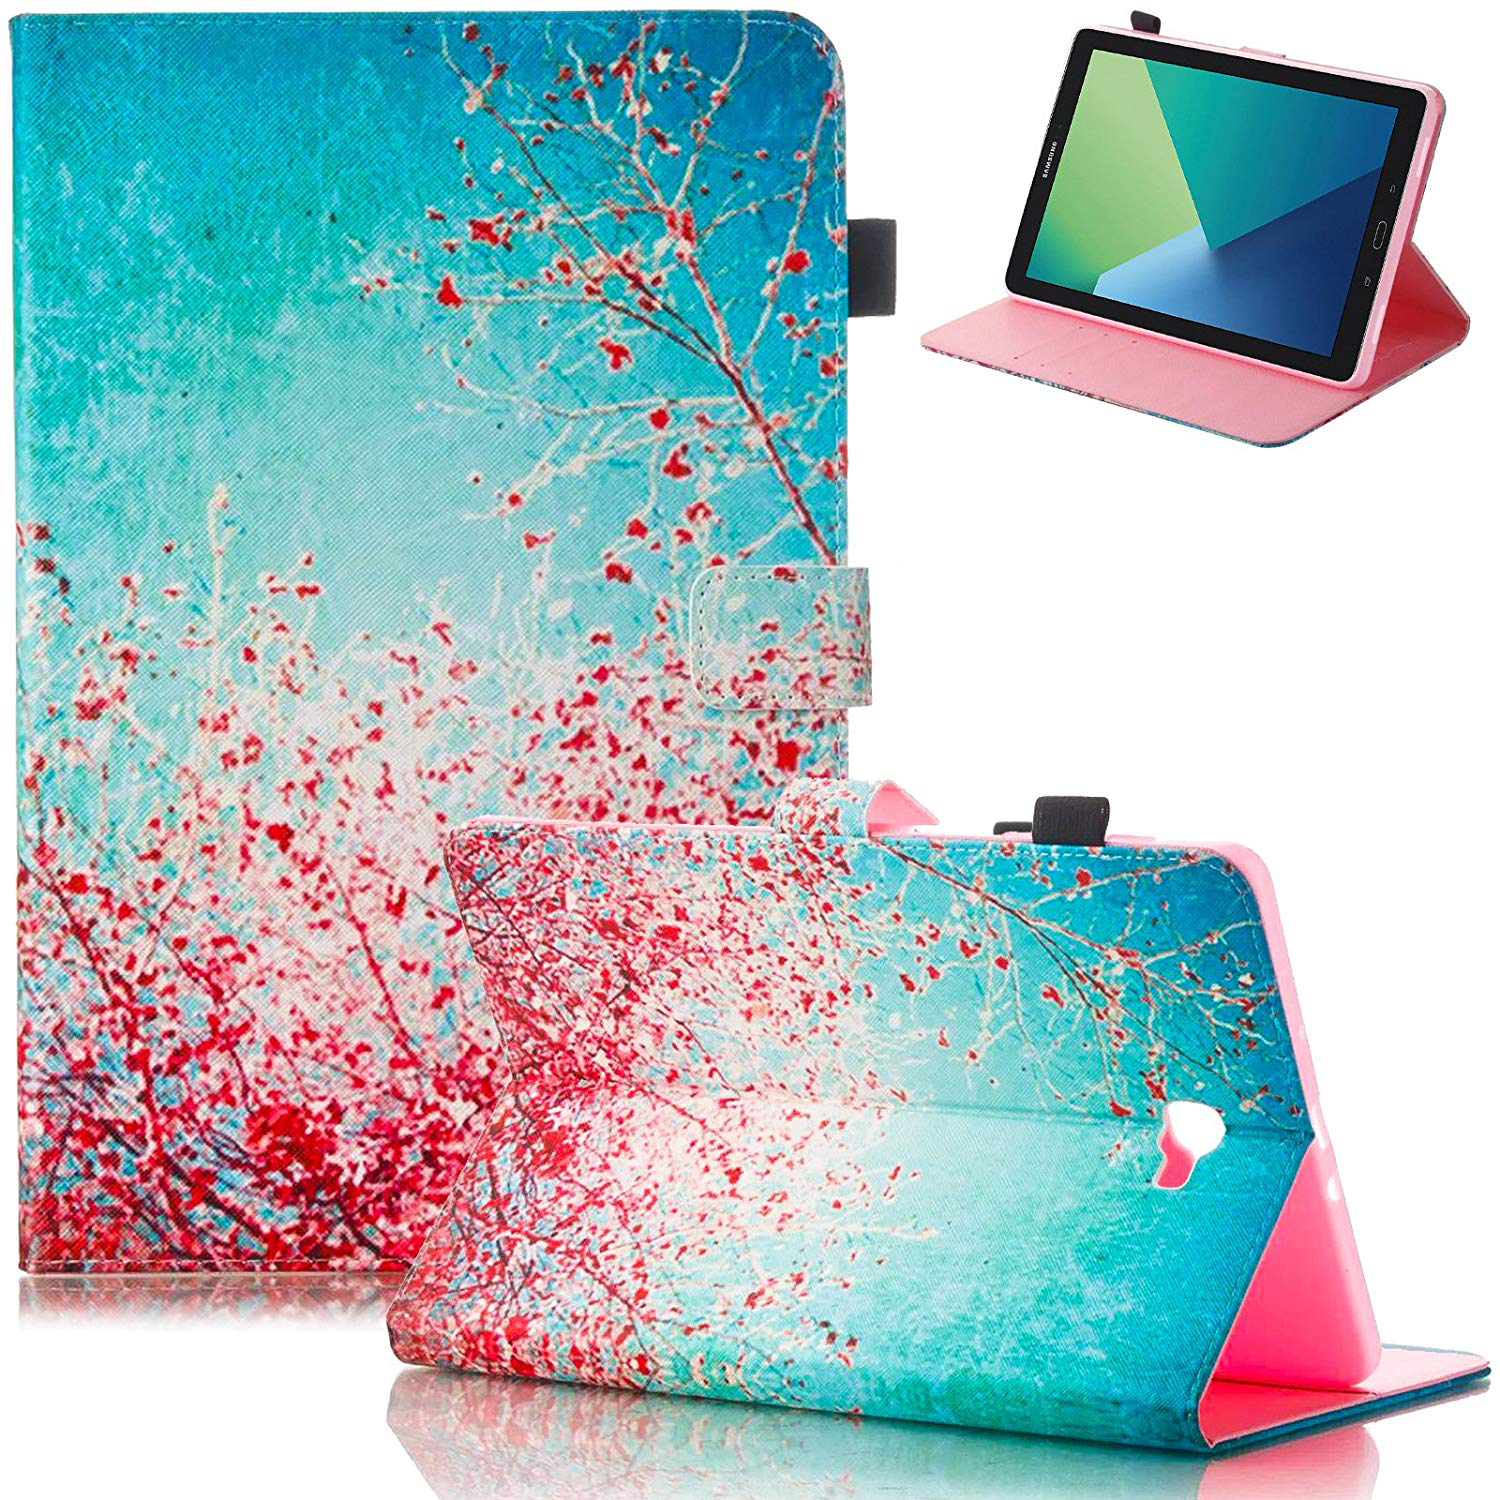 """Galaxy Tab A with S Pen 10.1"""" Case, SM-P580/ SM-P585 Case, Goodest PU Leather Folio Folding Stand Cover with Auto Wake Sleep for Samsung Galaxy Tab A 10.1-inch with S Pen Tablet, Blossom"""